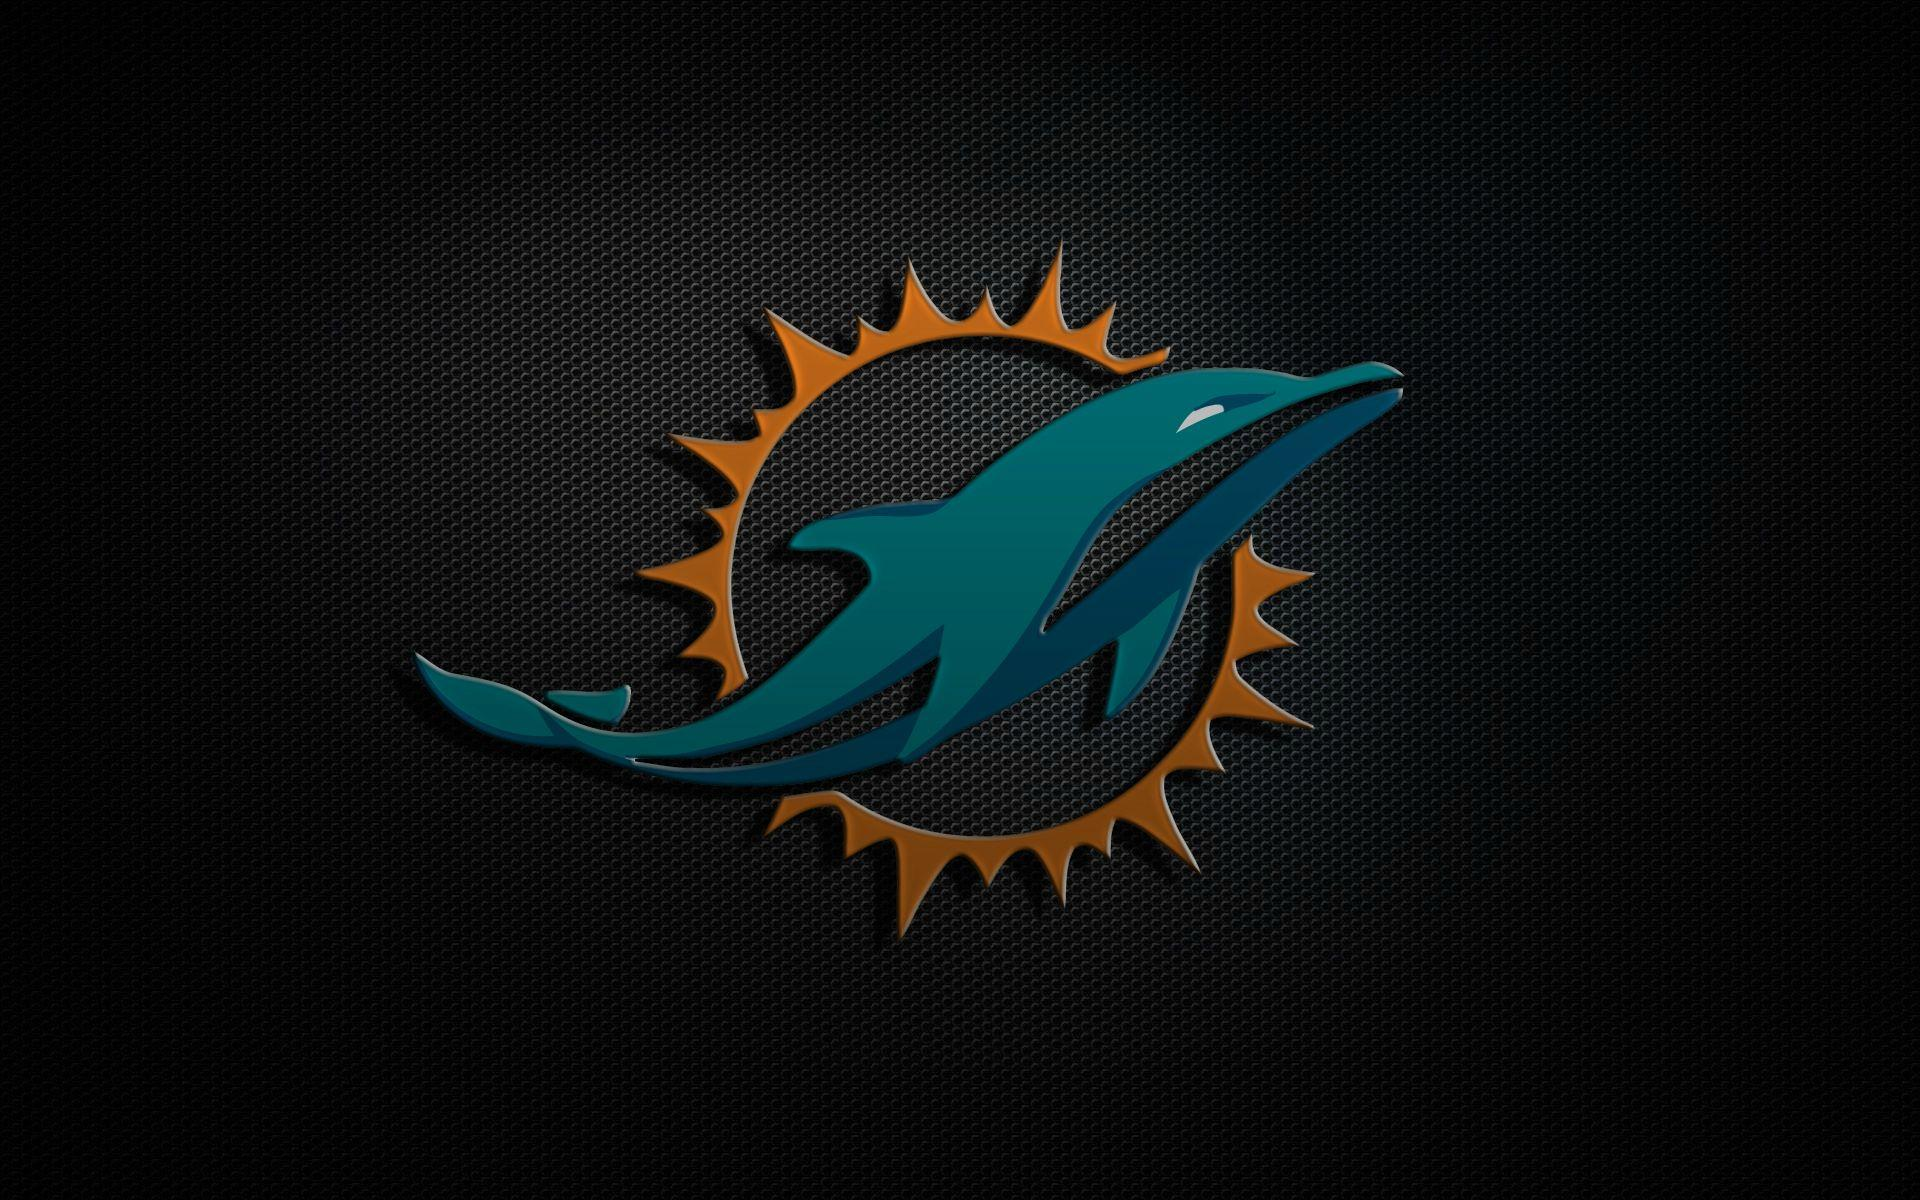 miami dolphins - photo #15